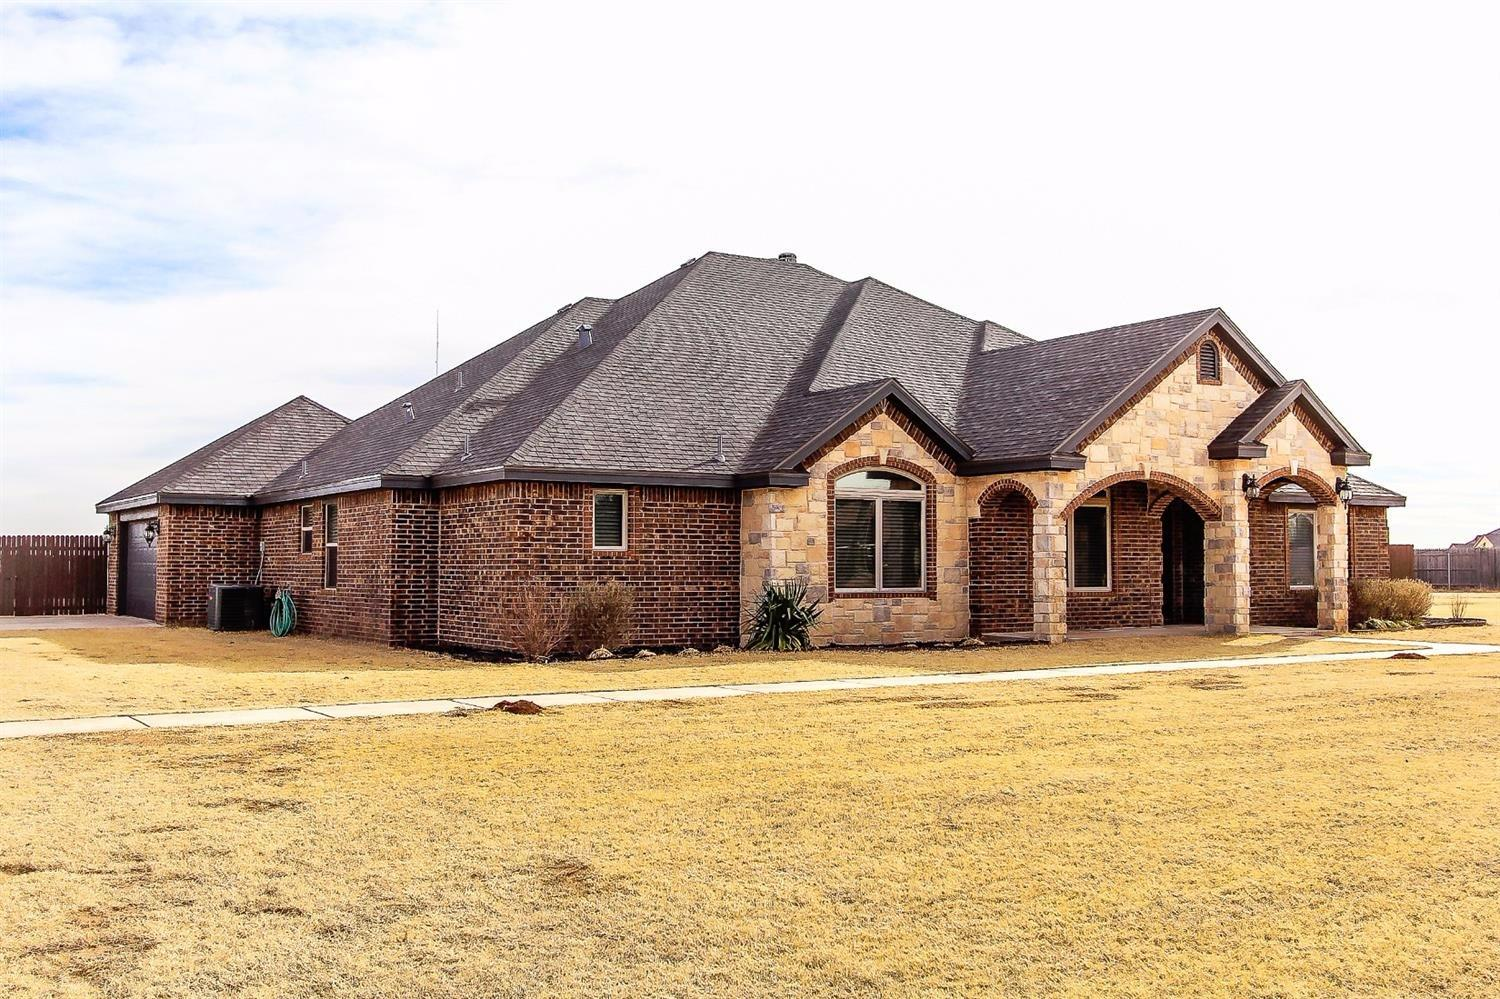 16201 County Road 2040, Lubbock in Lubbock County, TX 79423 Home for Sale